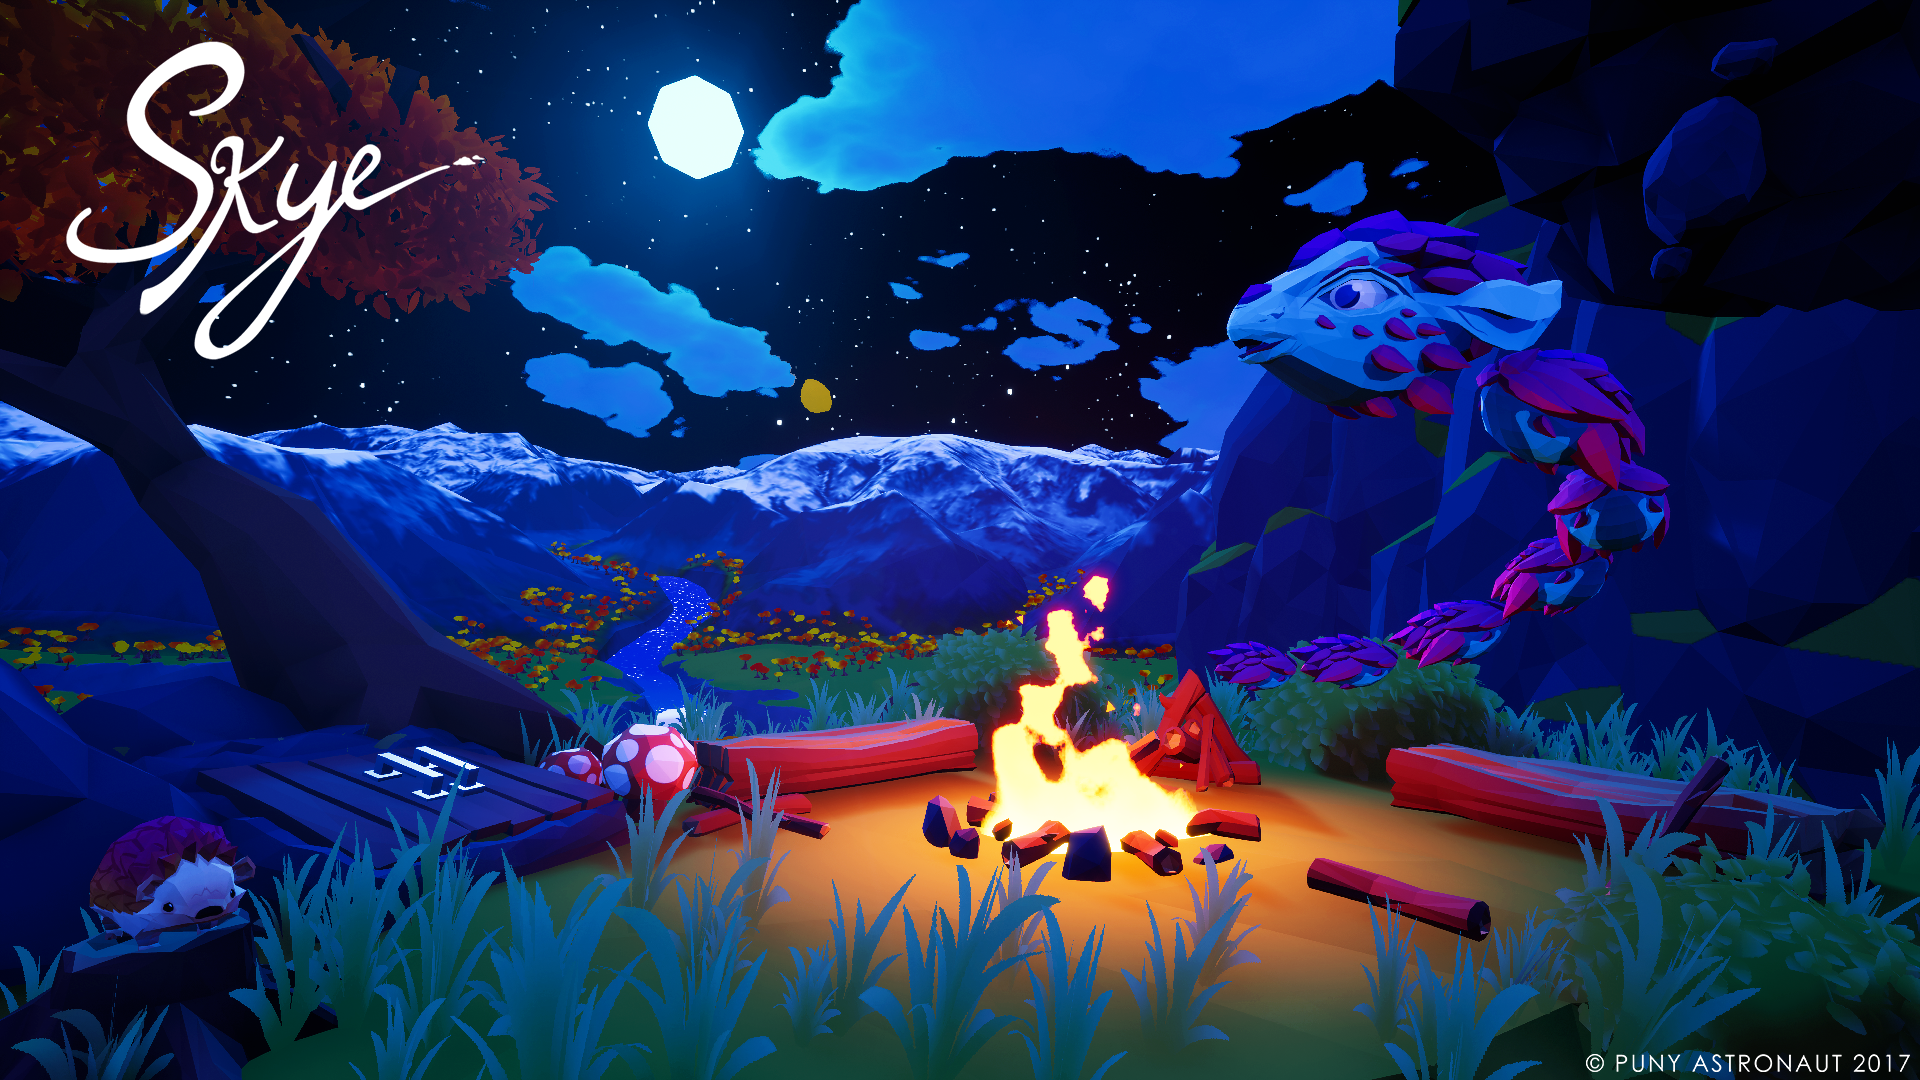 Meet Puny Astronaut, Devs At The Forefront of Scotland's Indie Scene